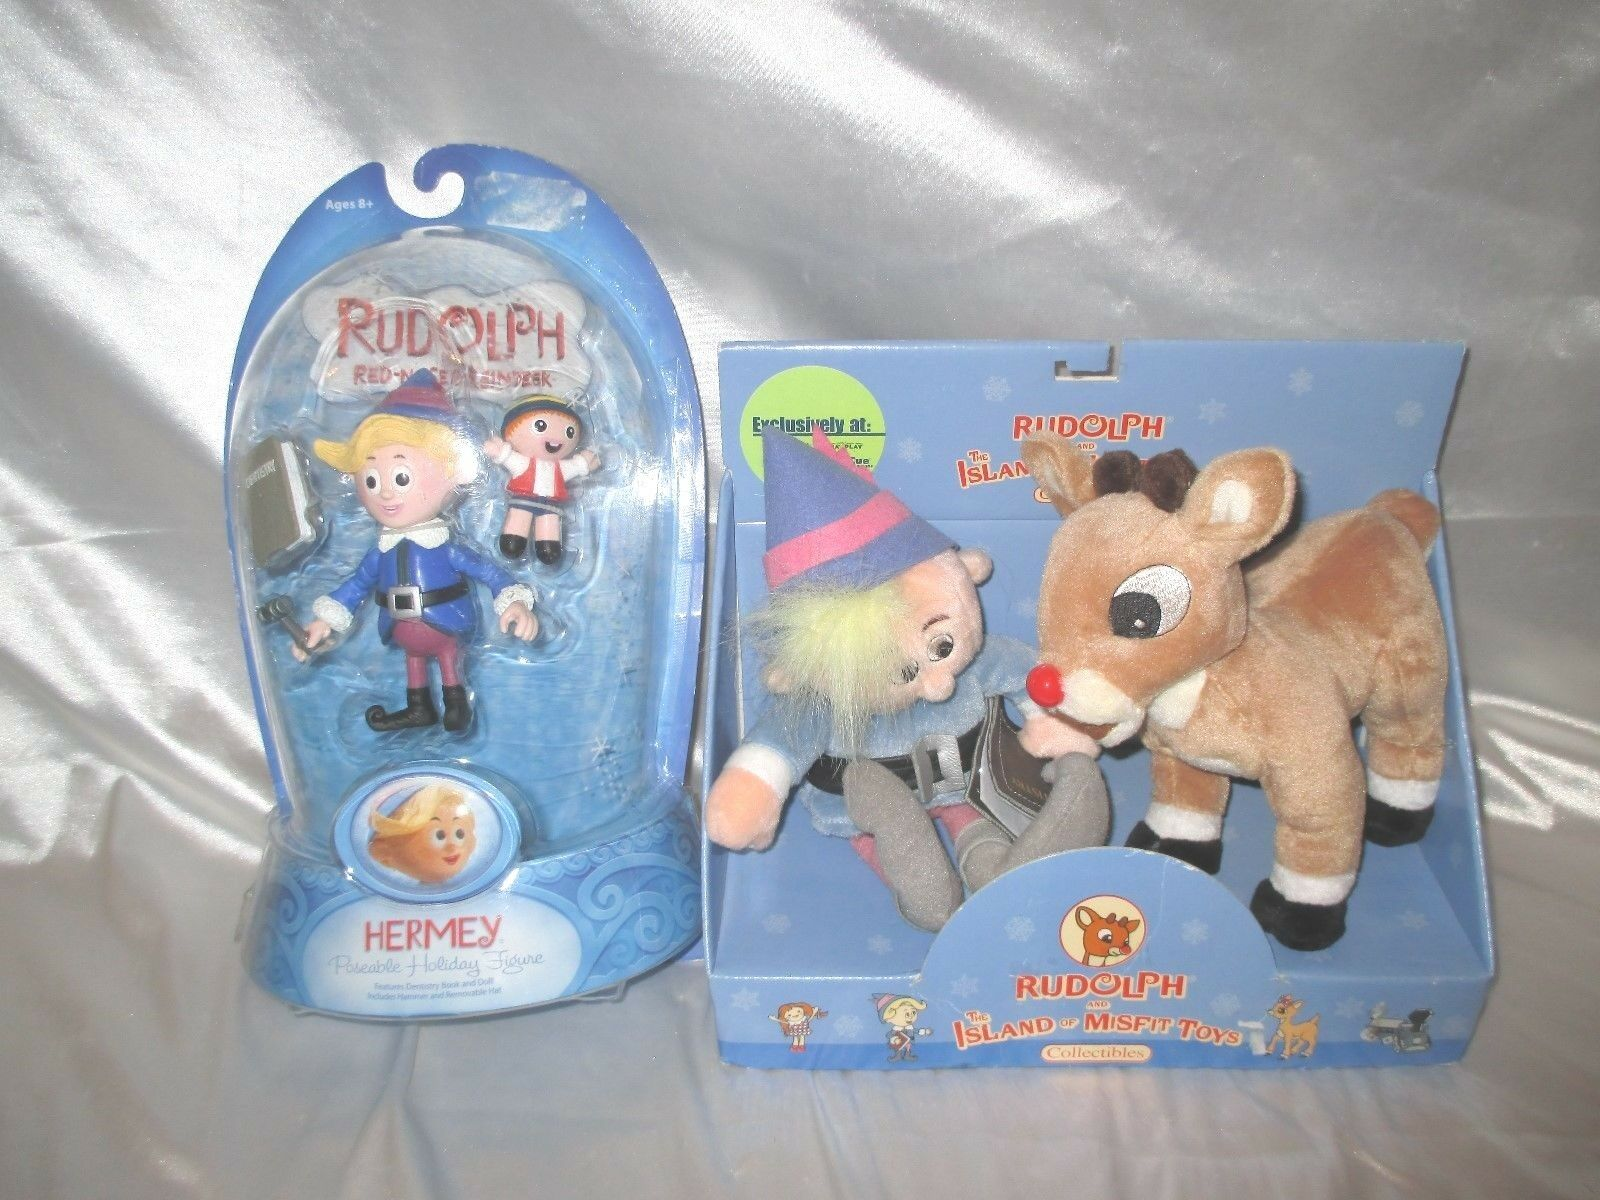 RUDOLPH THE ROT NOSED REINDEER MISFIT TOYS Hermey Doll Figure + PLUSH SET LOT